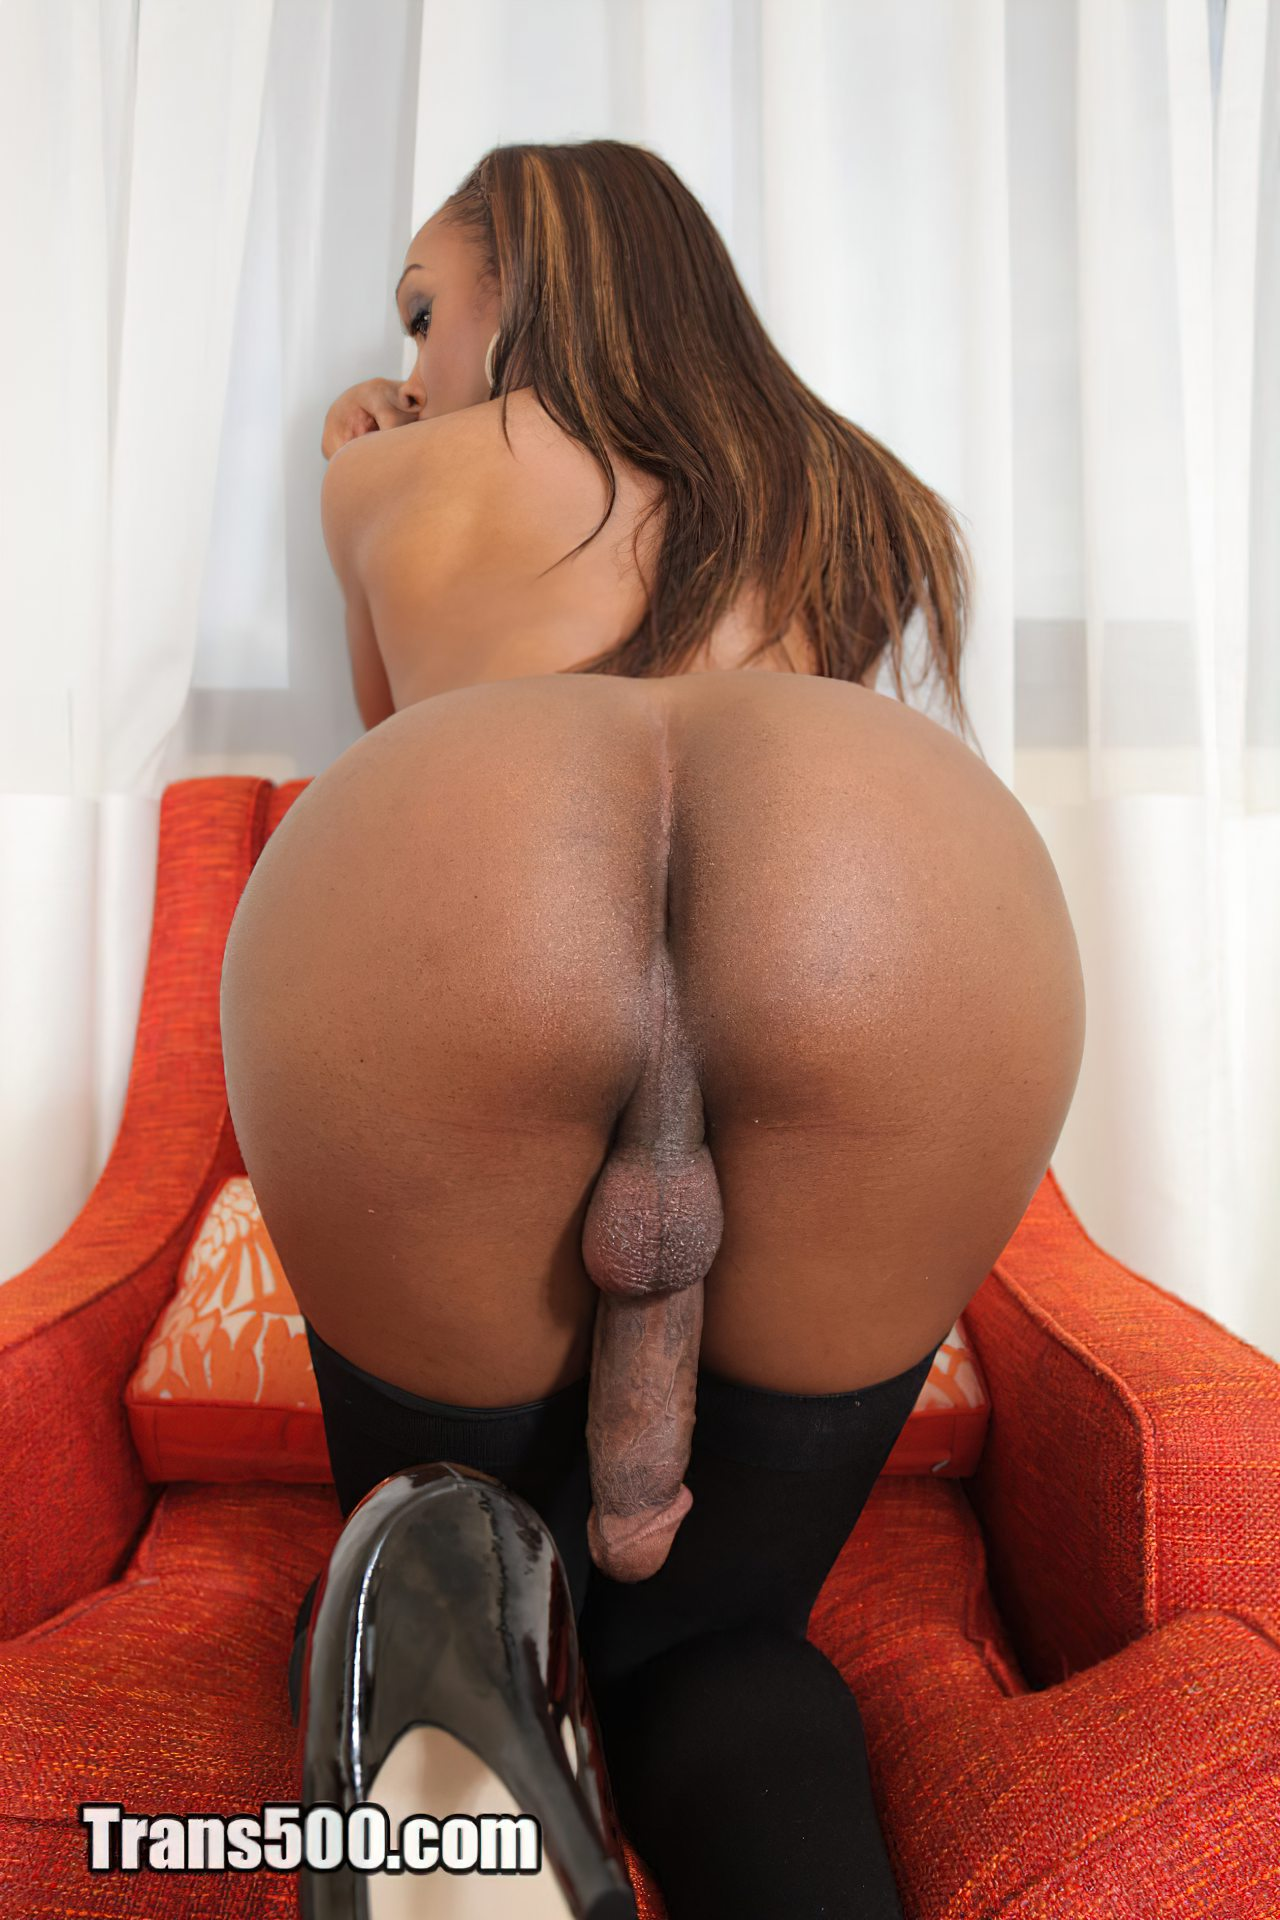 Mulher Transexual (27)